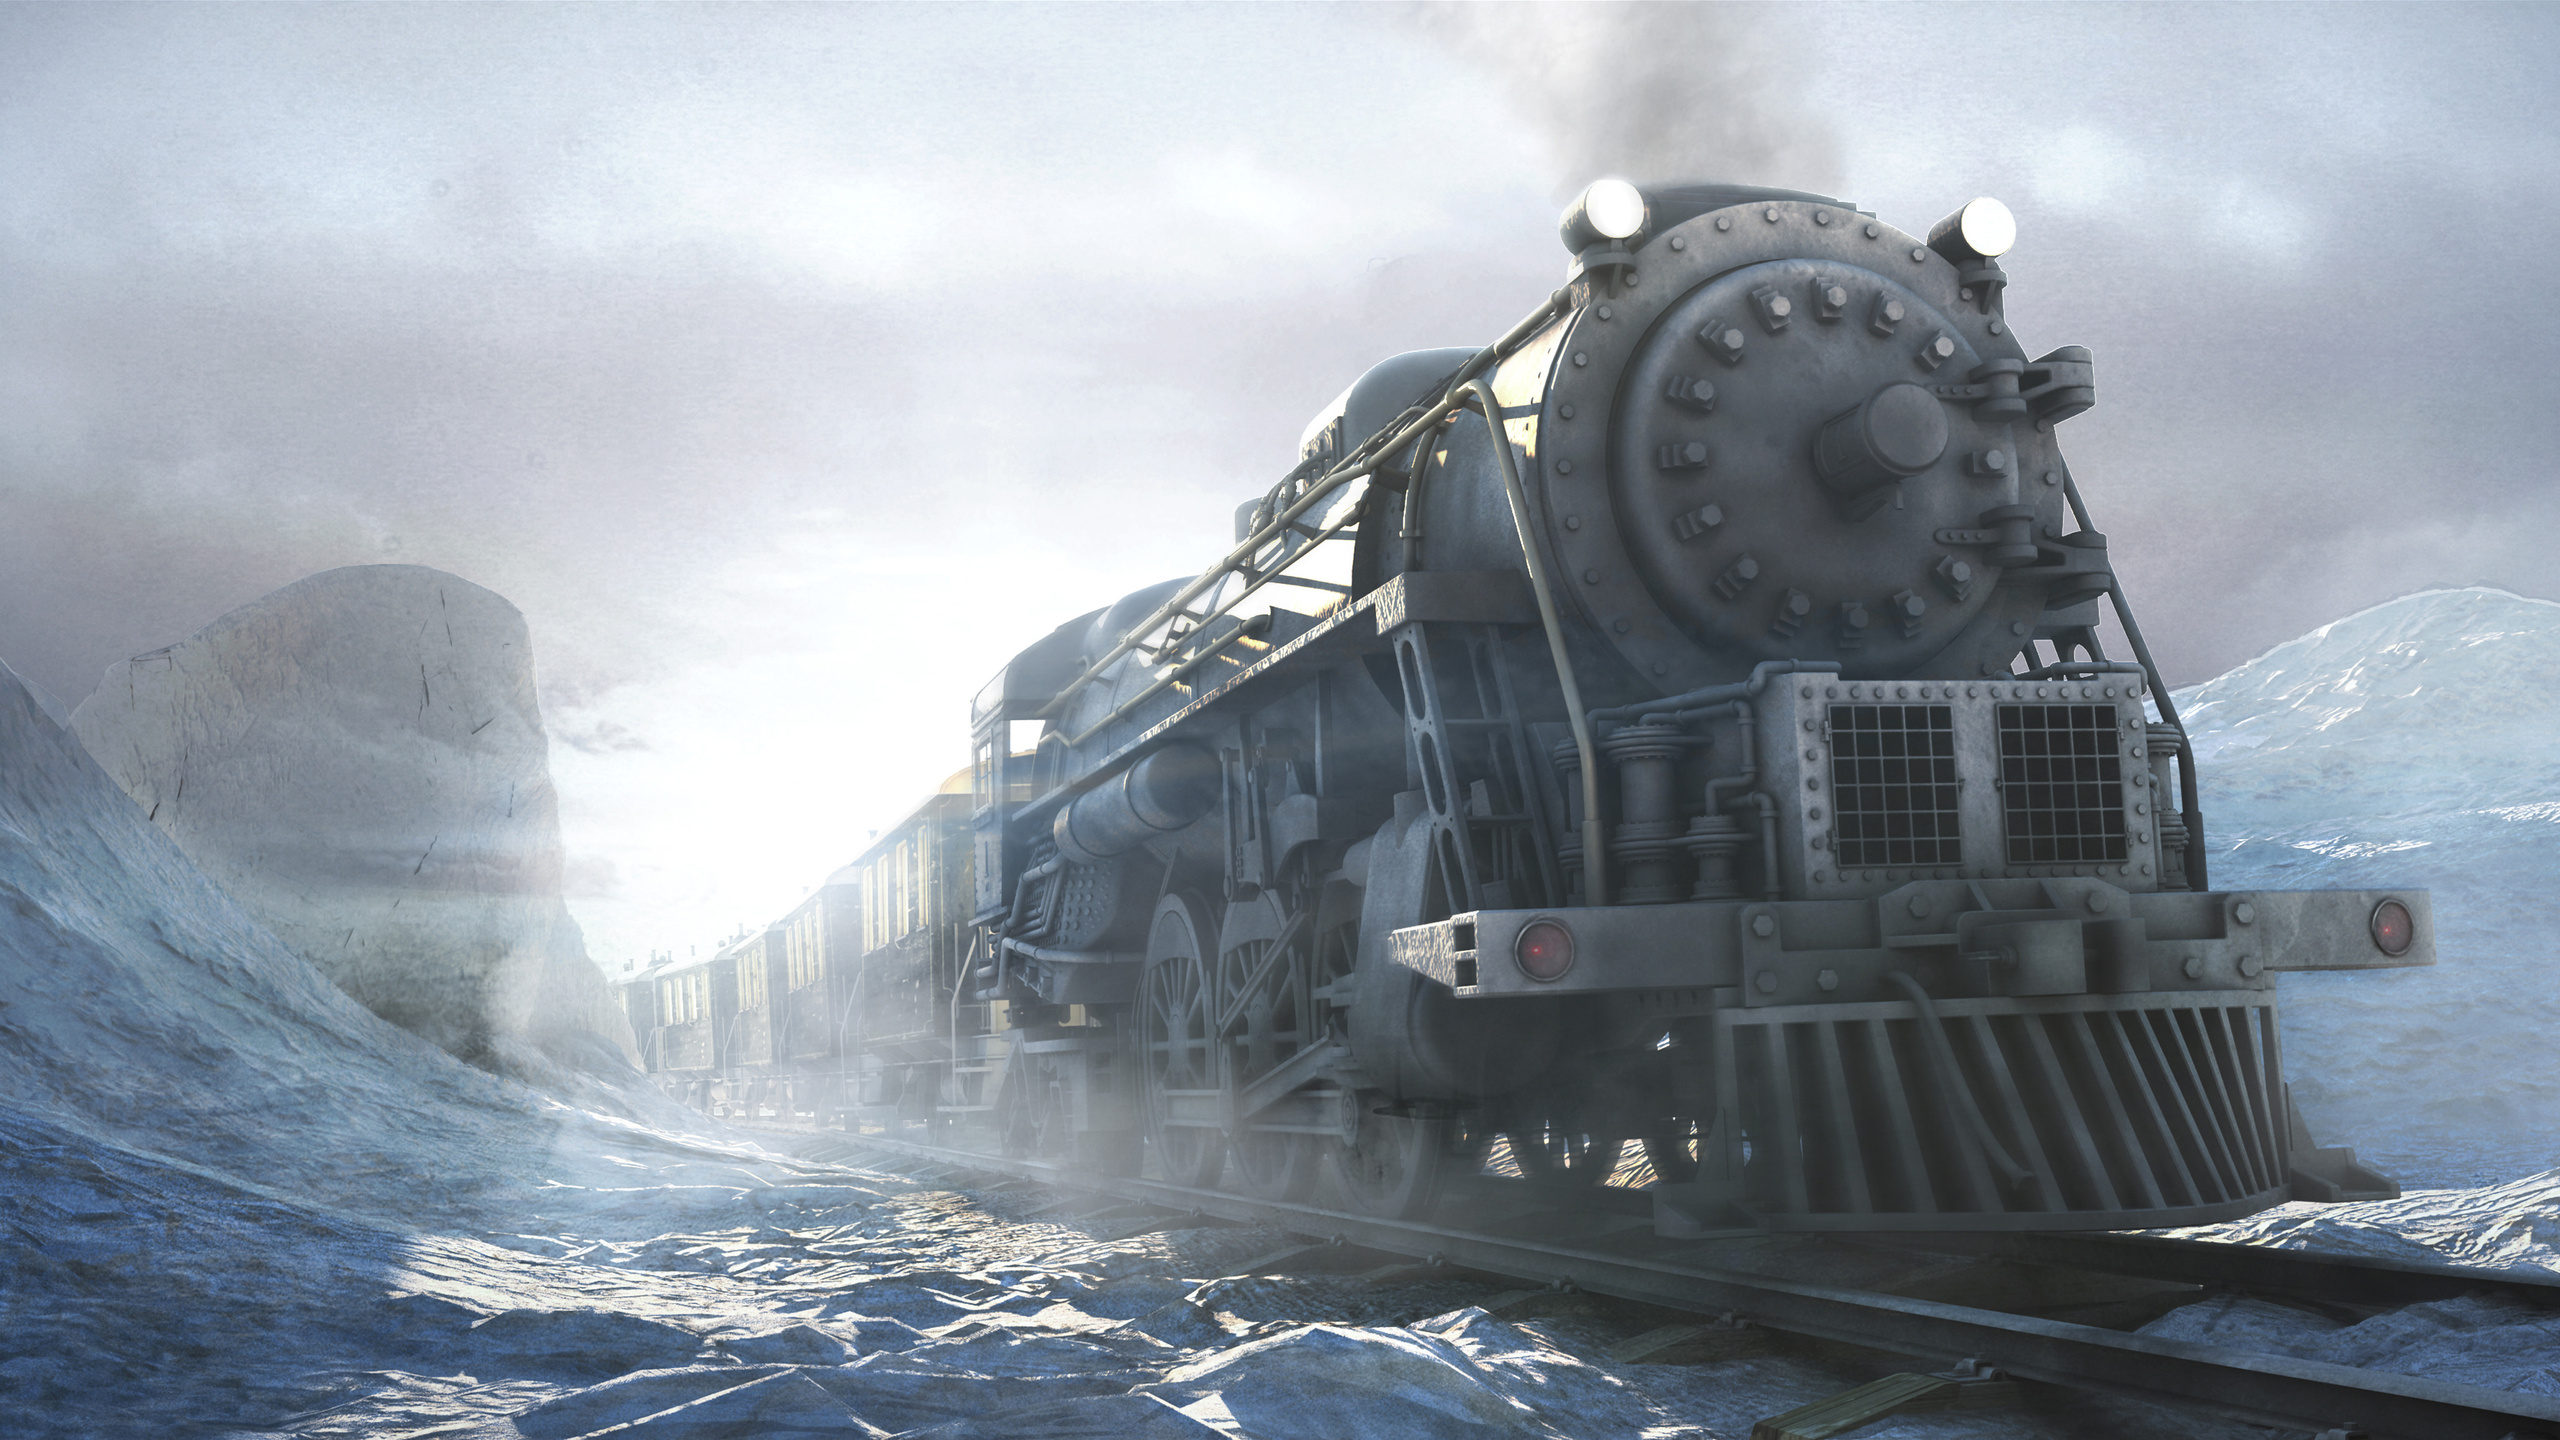 fantasy-train-desktop-background-wallpapers-hd-free-wallpaper-vintage-train-direct-hd-download-for-iphone-ipad-borders-free-naruto-mobile-3d.jpg